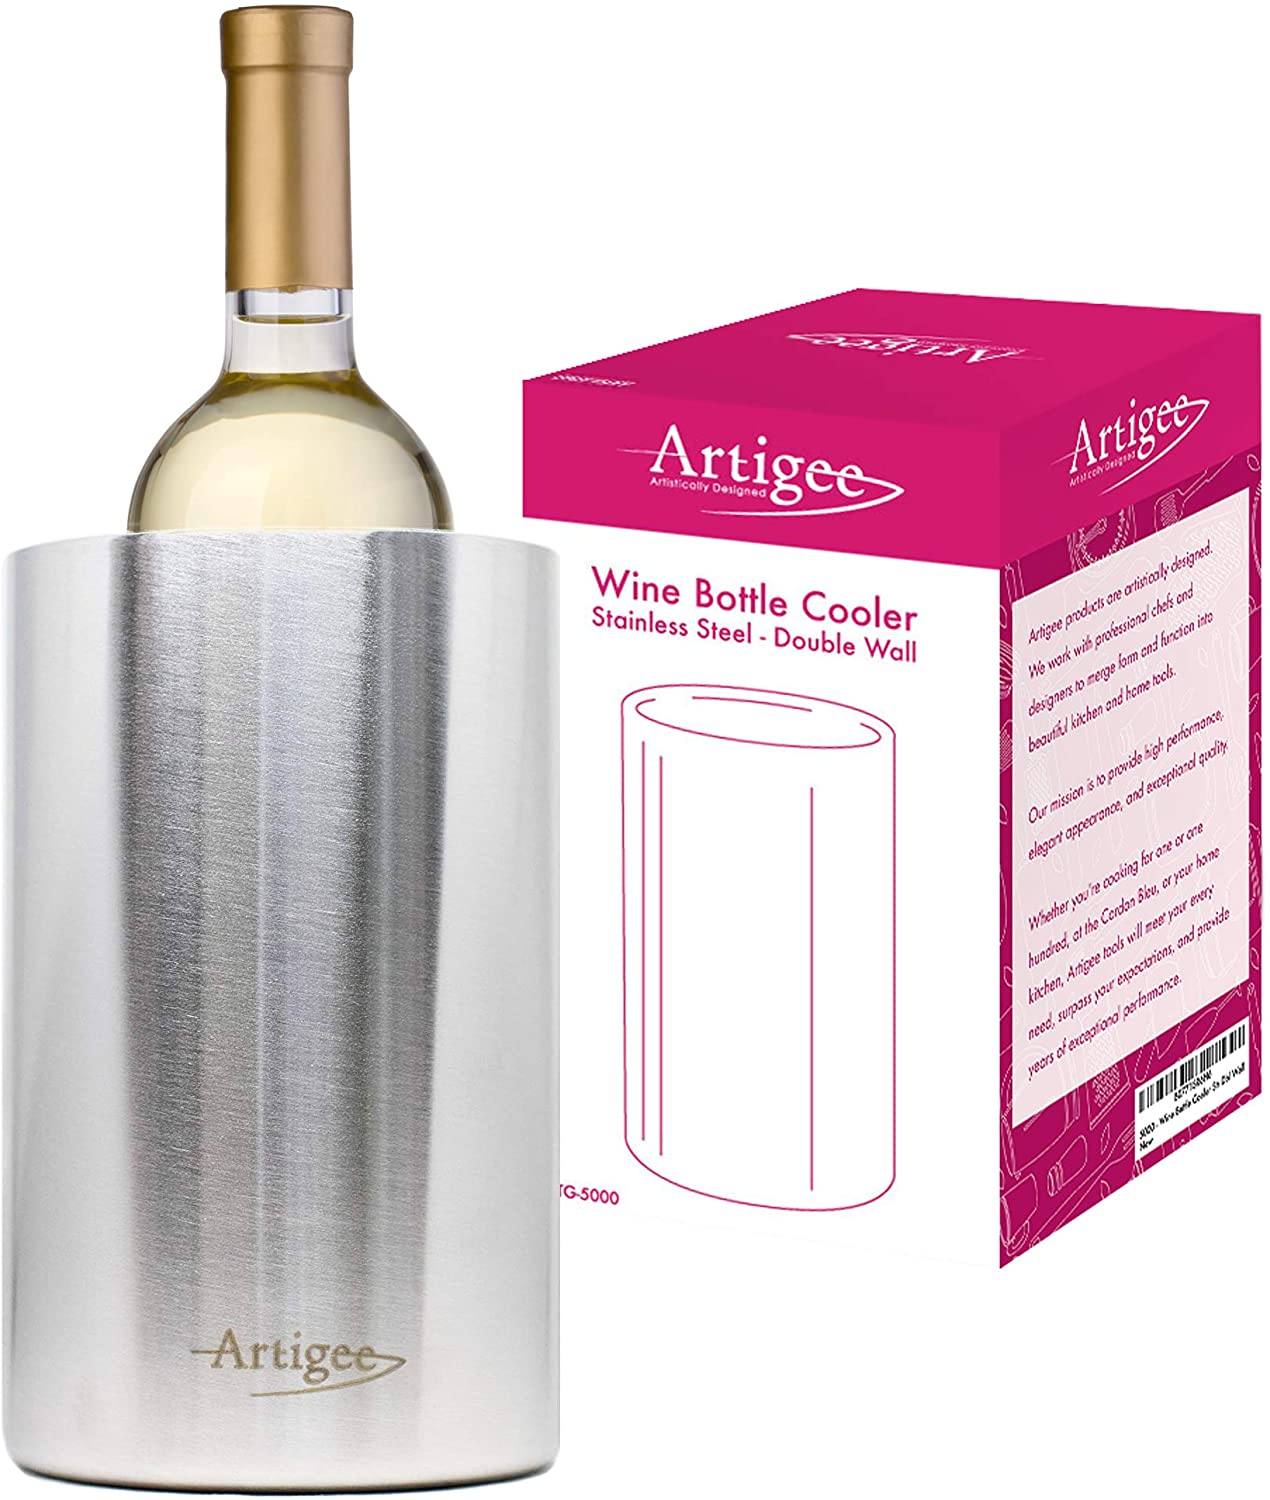 Artigee Wine Cooler Bucket - Double-Wall Stainless Steel Insulated Wine Chiller/Champagne BucketStainless Steel | Fits all 750ml Bottles, Keeps Wine Cold